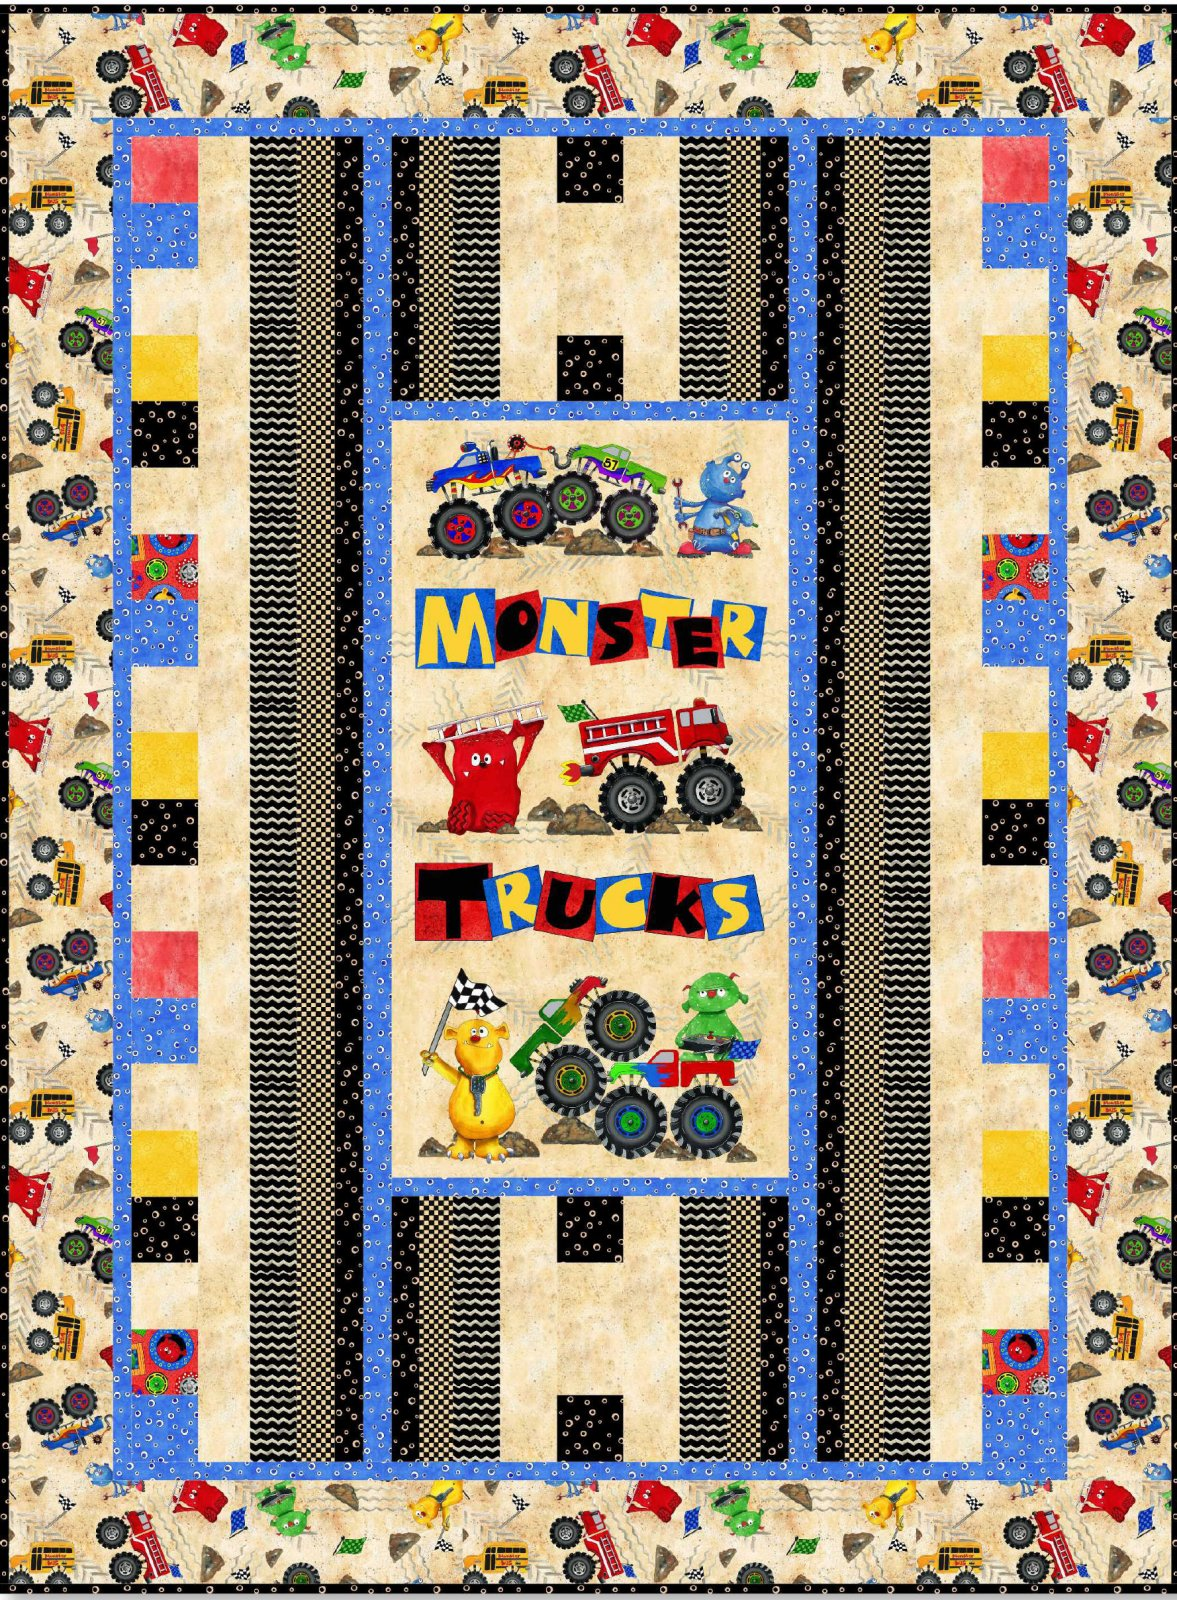 Monster Truck Free Downloadable Quilt Pattern